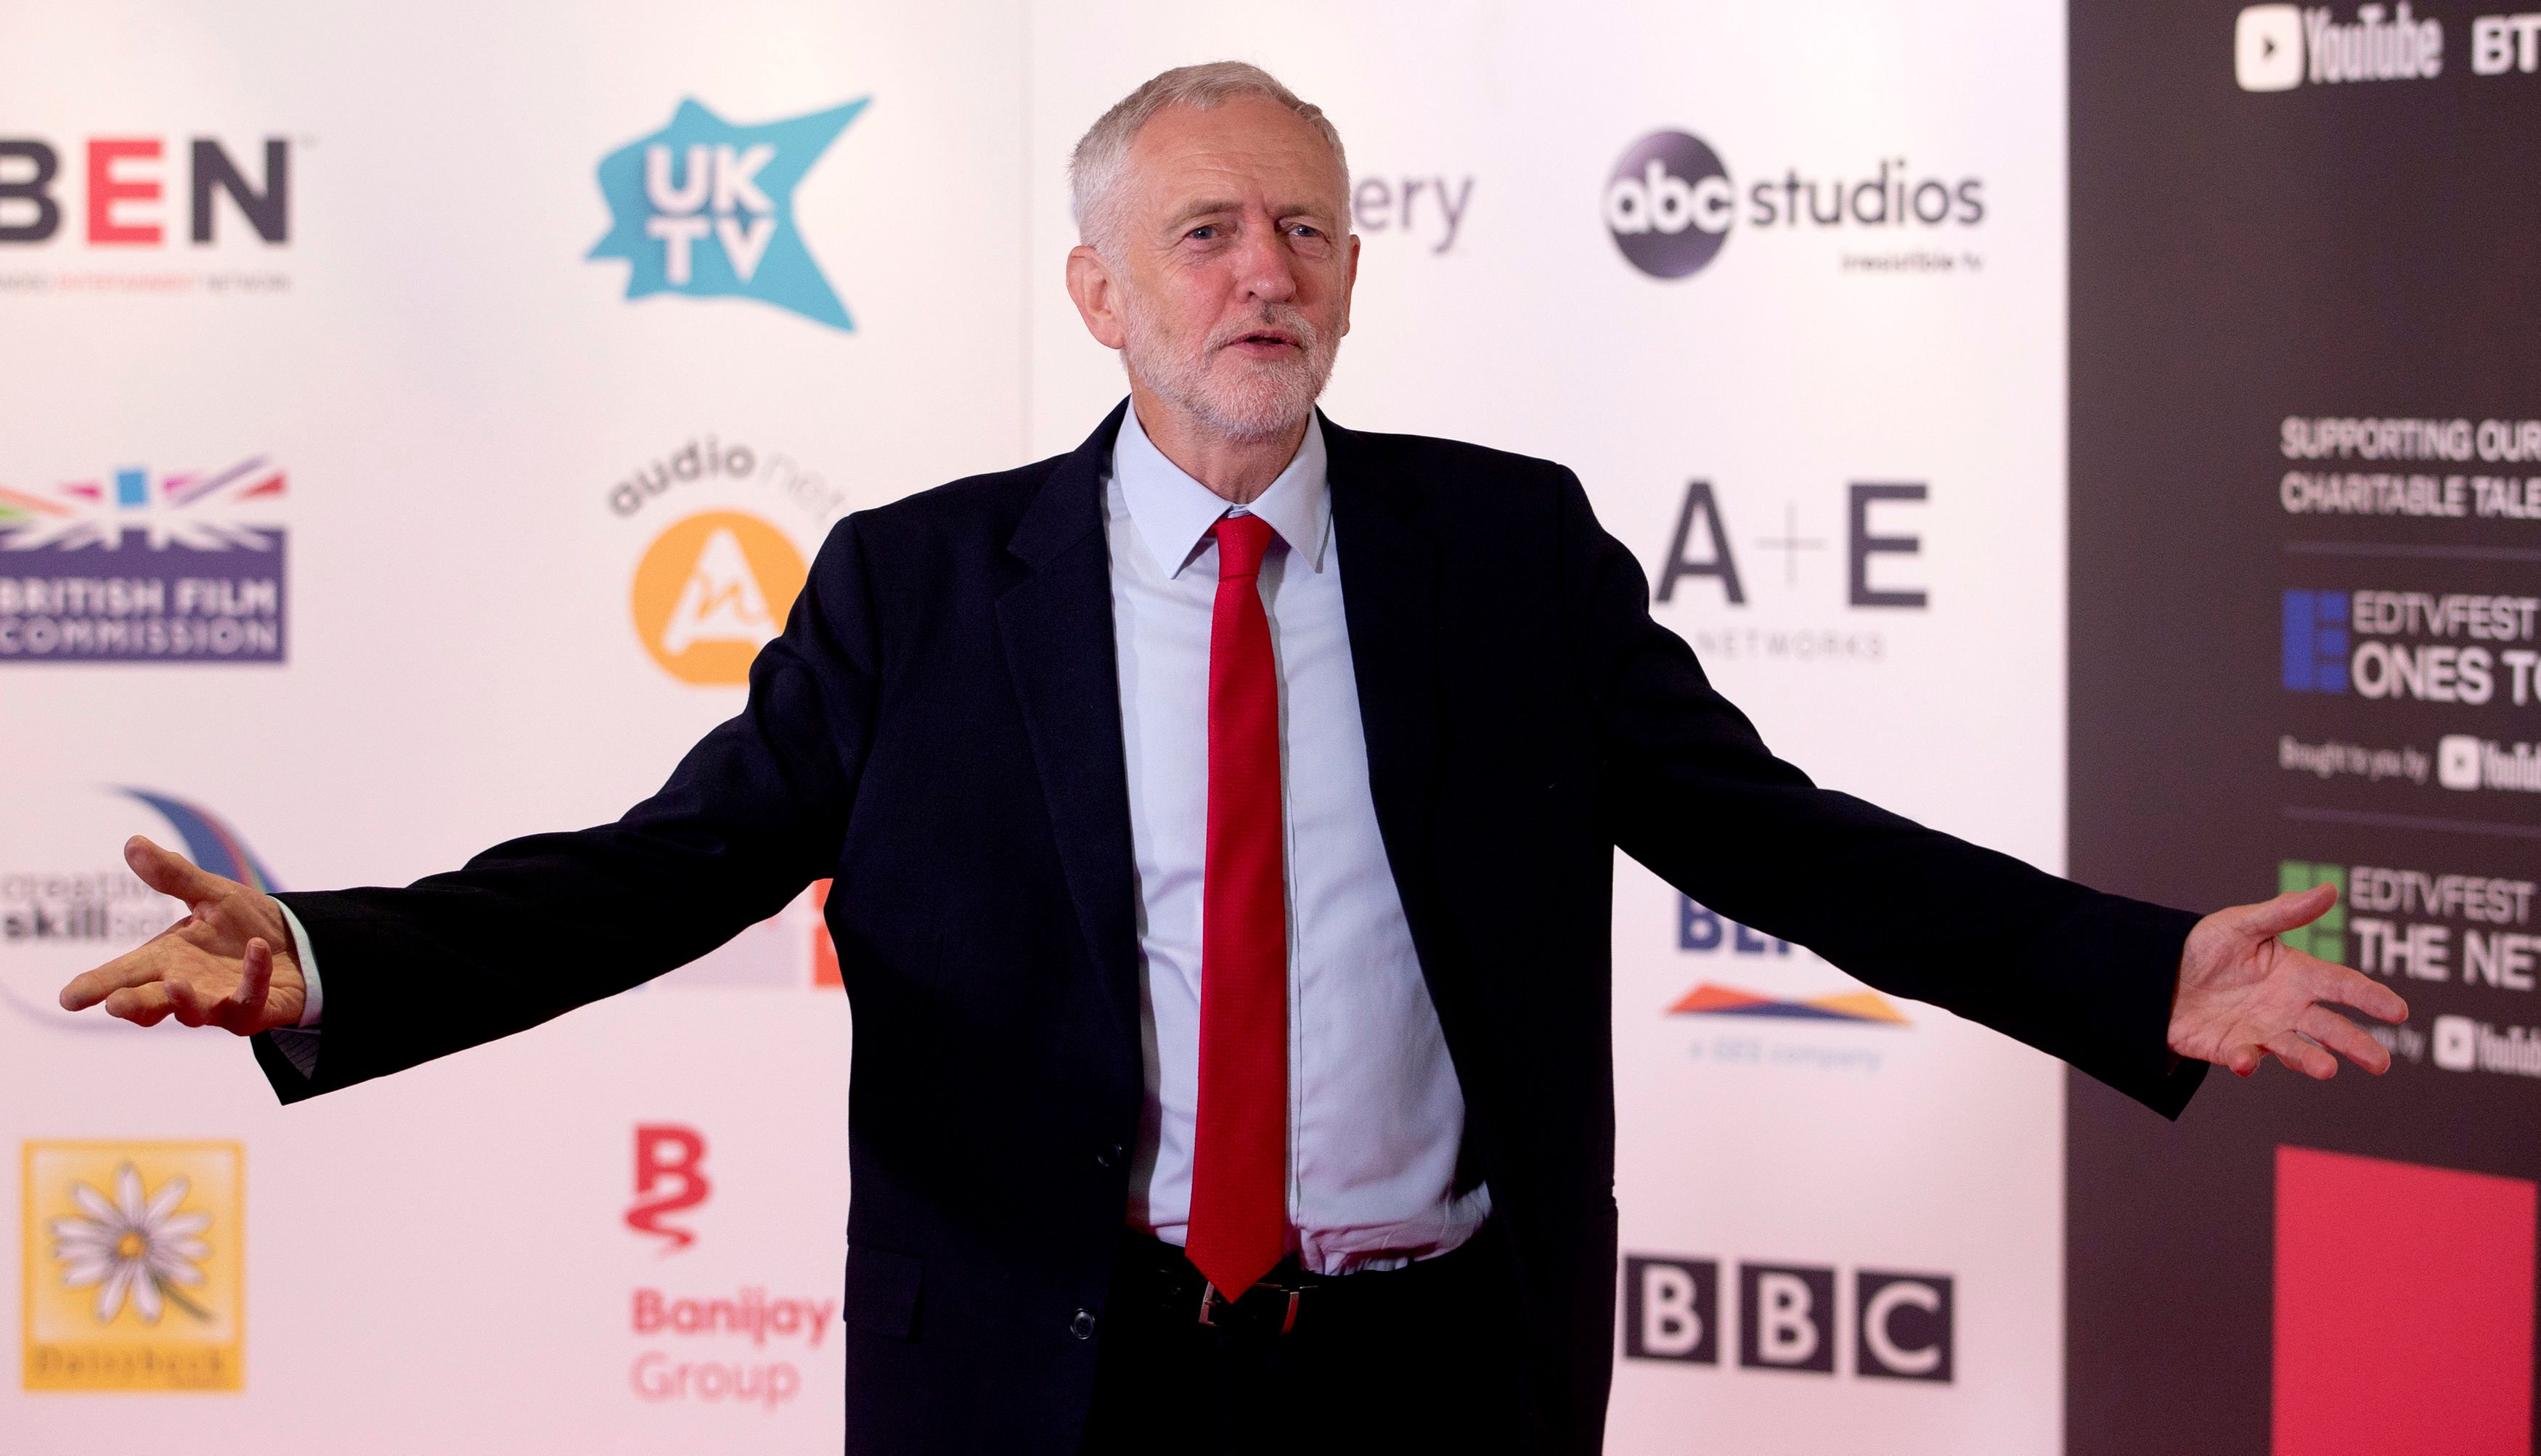 Corbyn Taken 'Out Of Context' When He Said 'Zionists Don't Understand Irony', John McDonnell